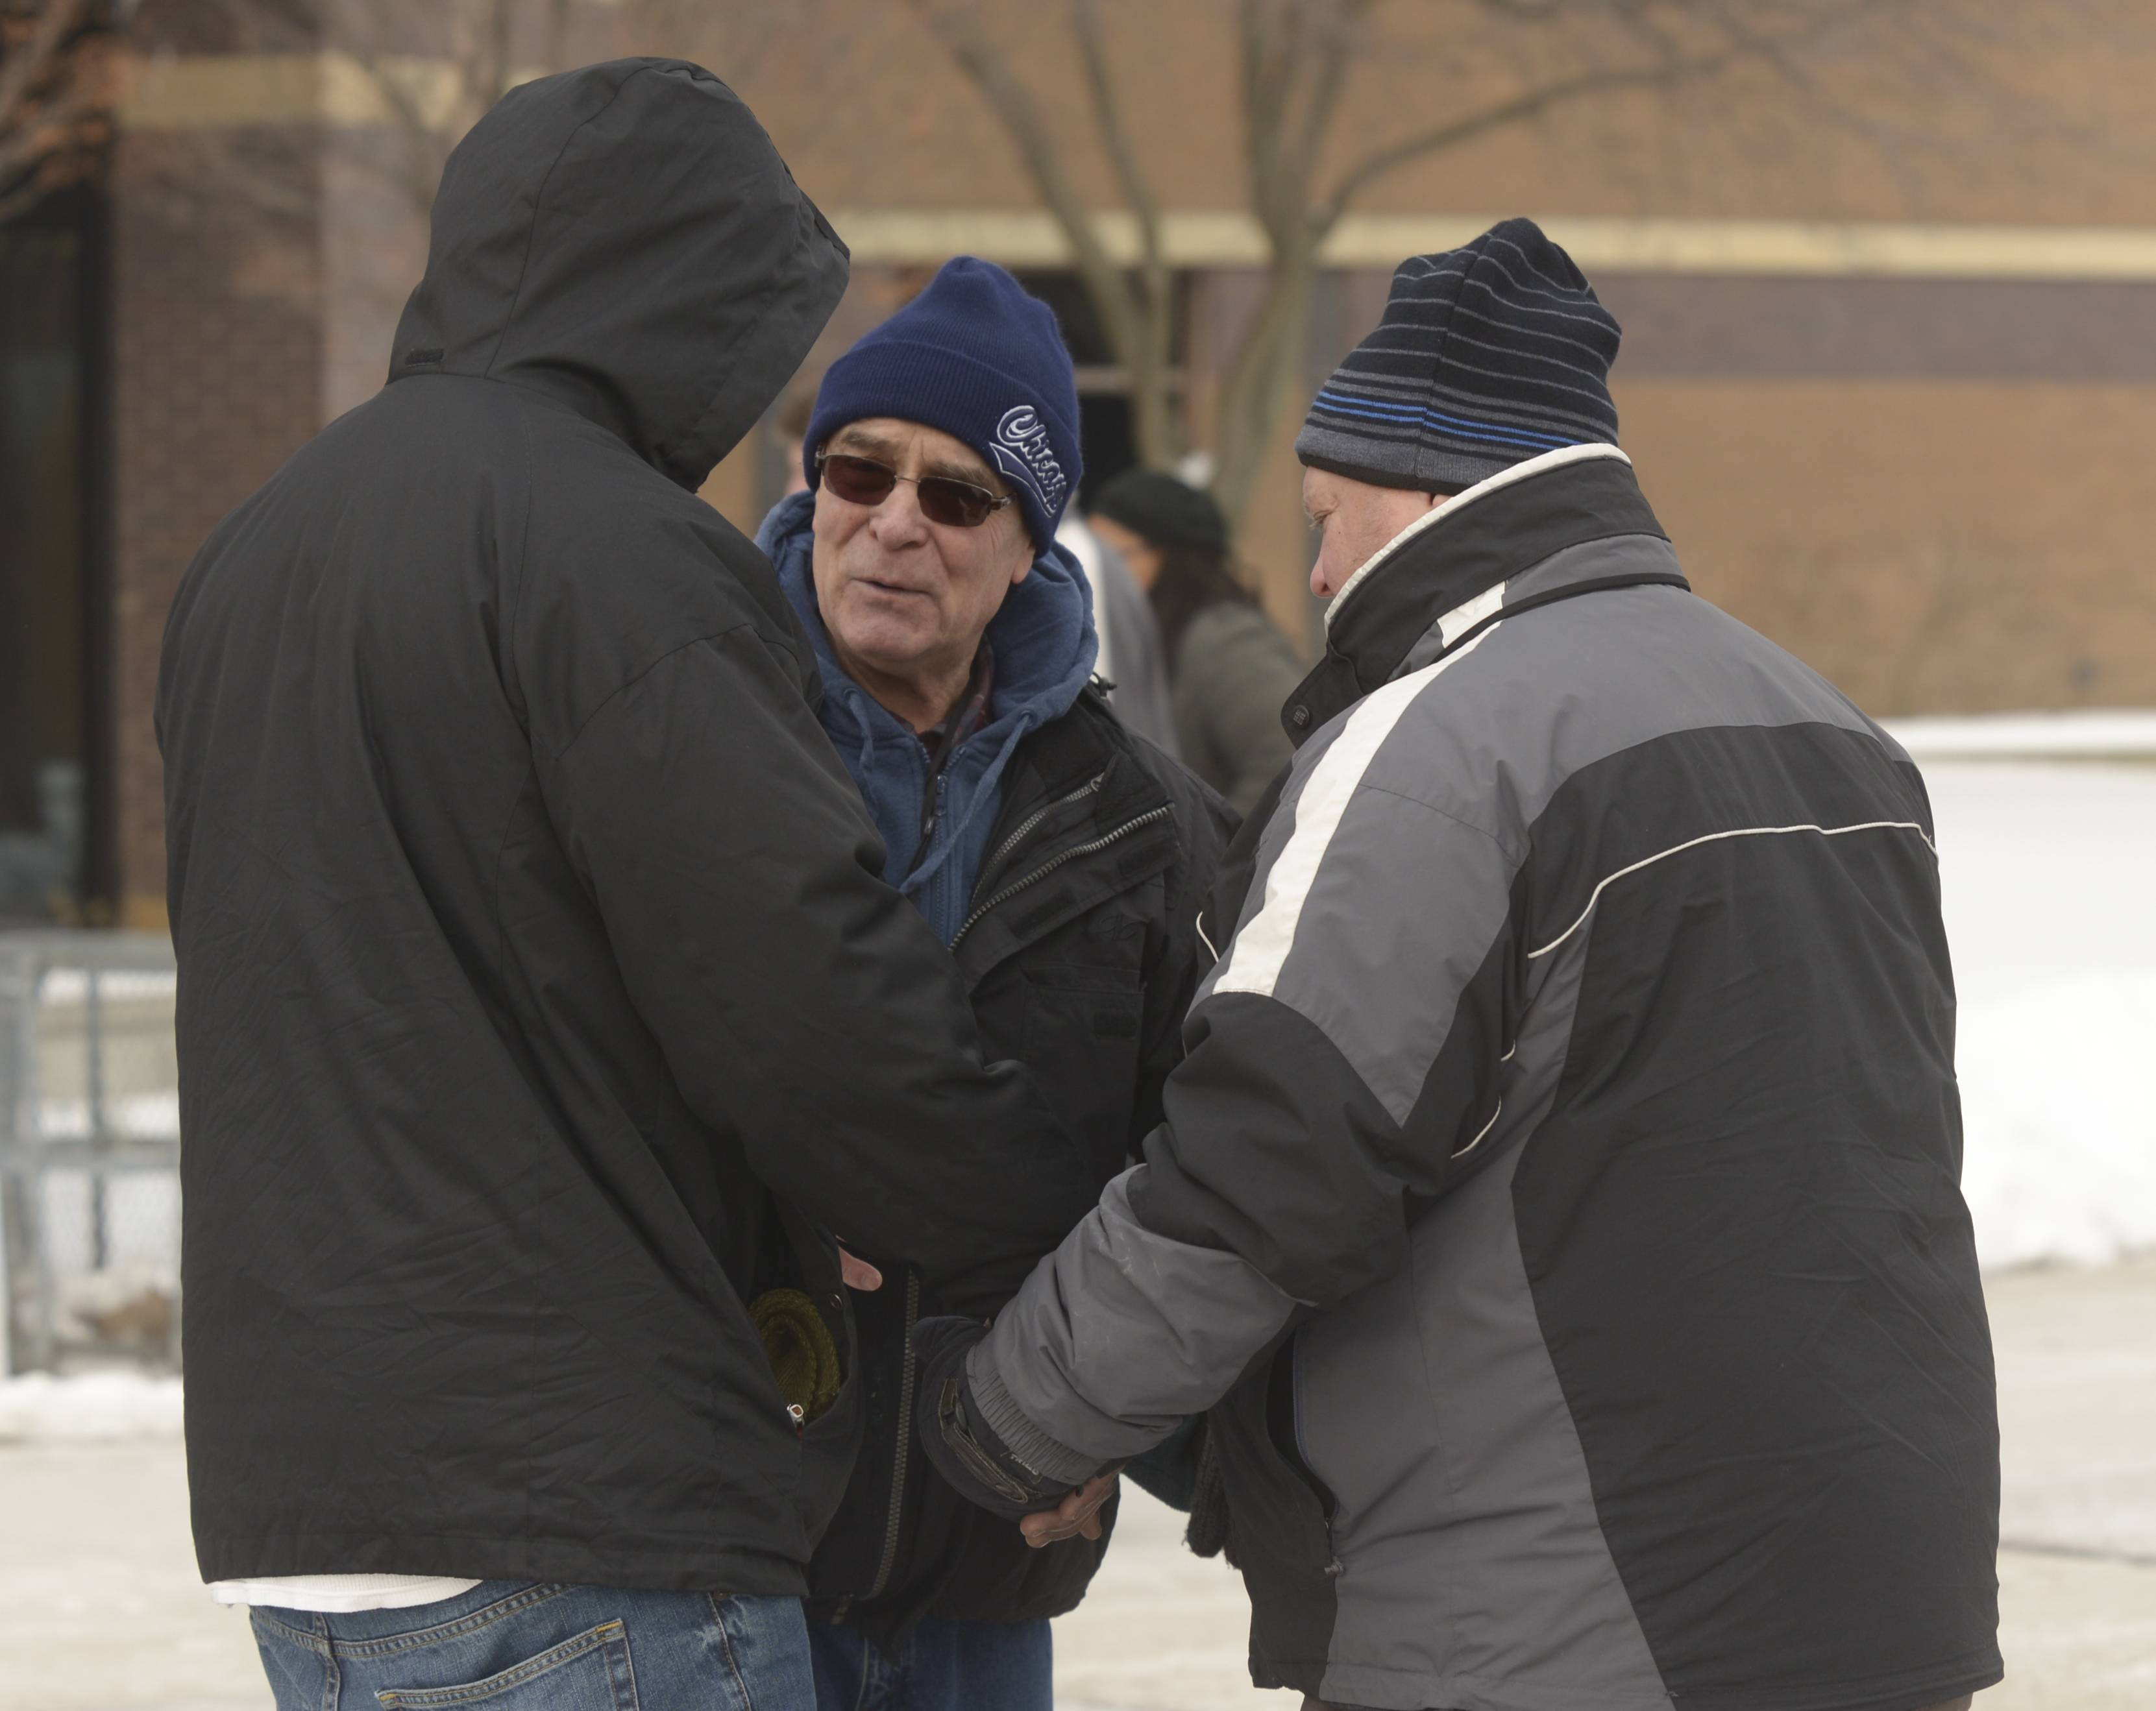 Steven Garner, of Bartlett, prays with Courtside Ministries DuPage volunteers Nick Popescu of Winfield and Ken Schrock of Addison outside the DuPage County courthouse.